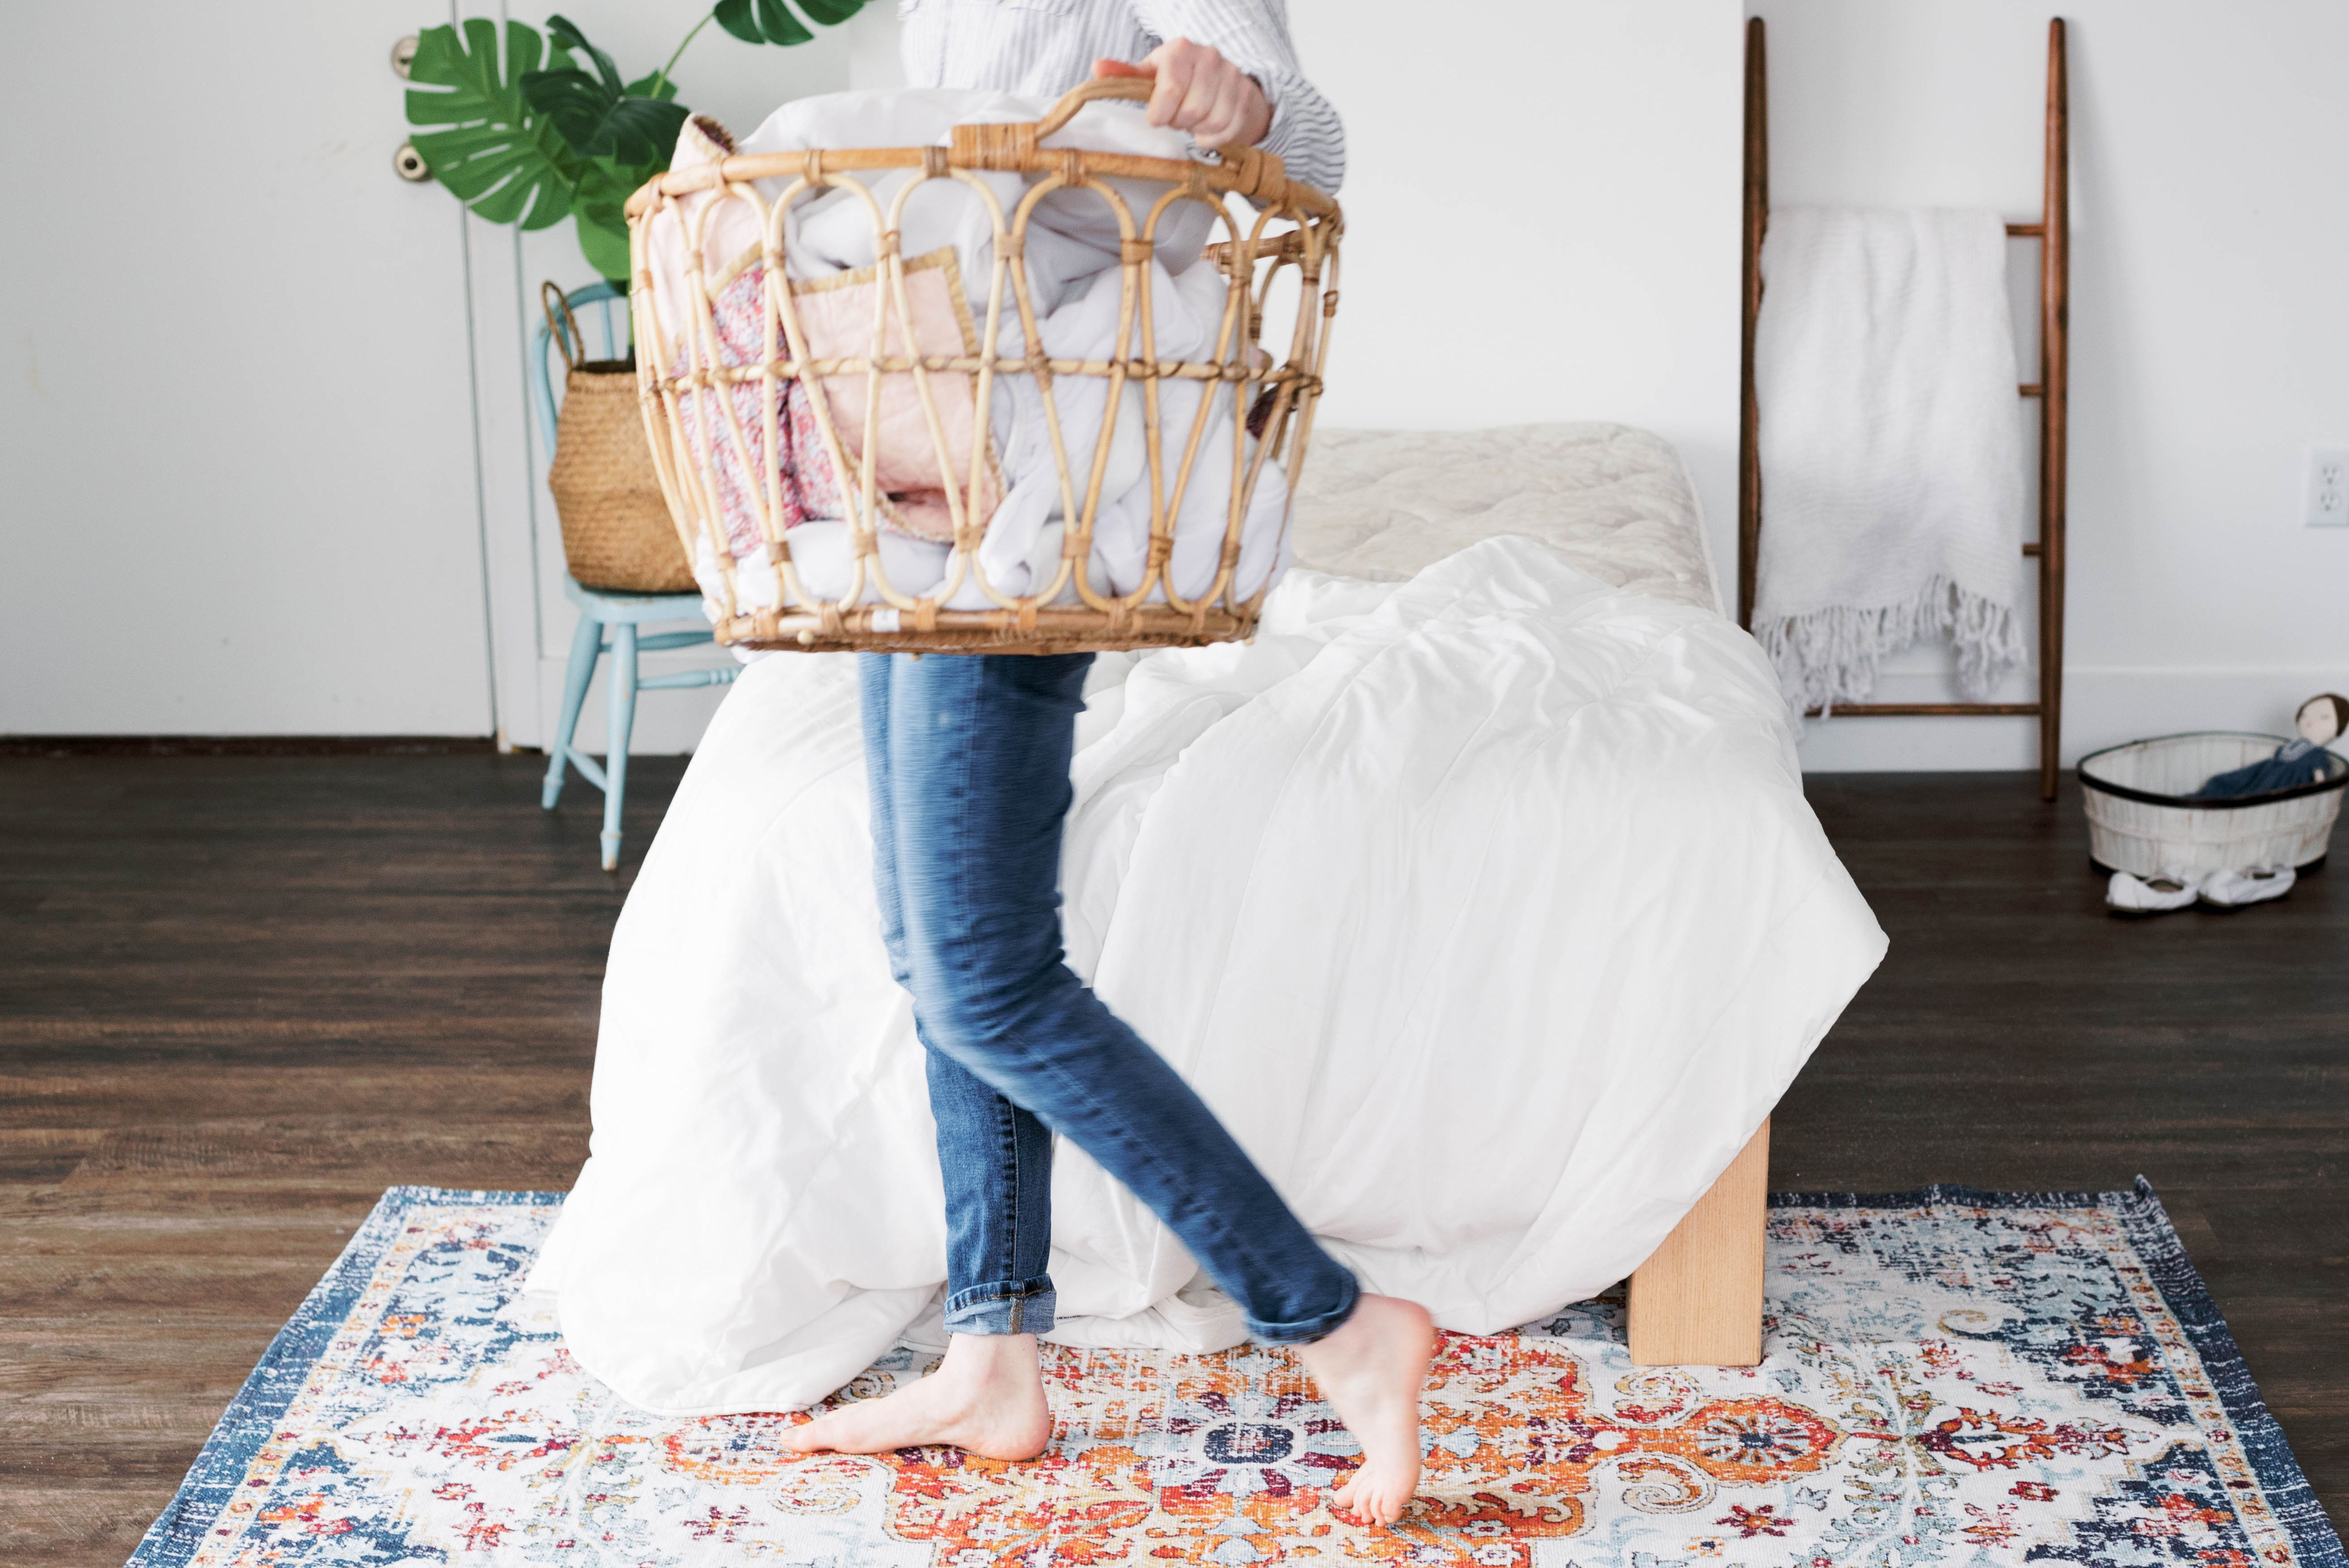 15-Minute Decluttering Projects That Will Transform Your Home